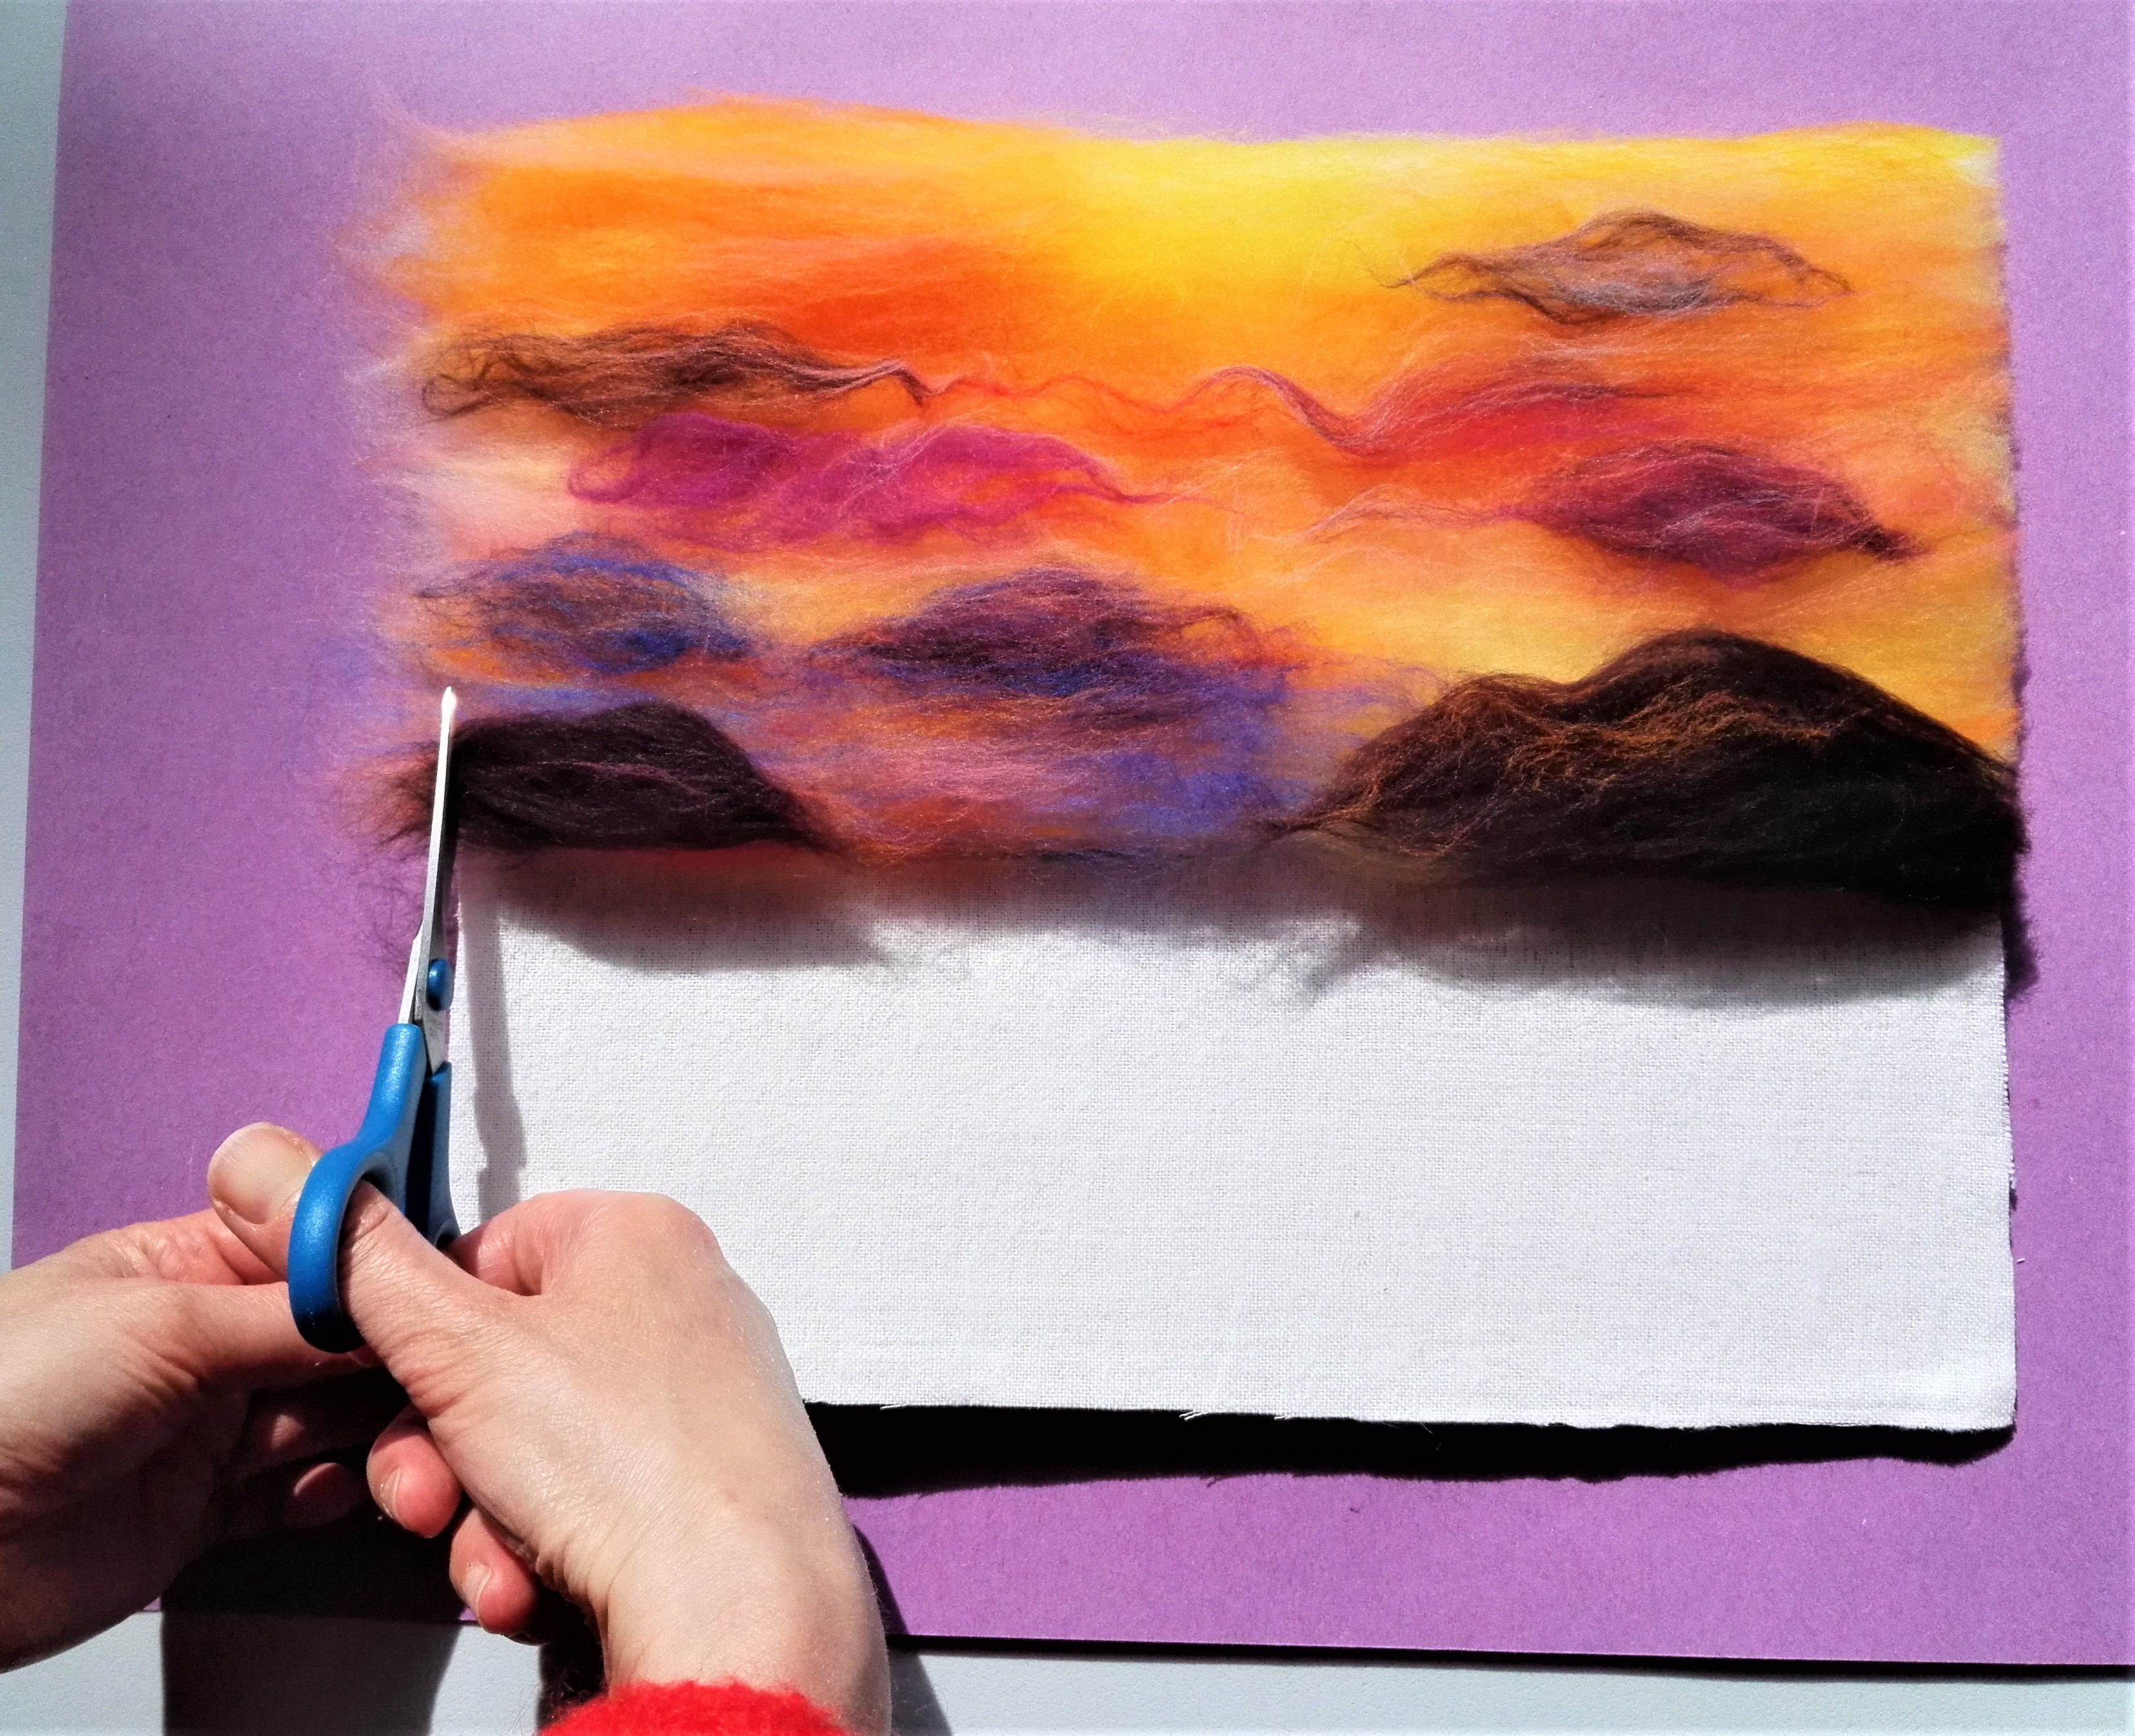 Wool painting kits now available to buy from Magic Wool Studio